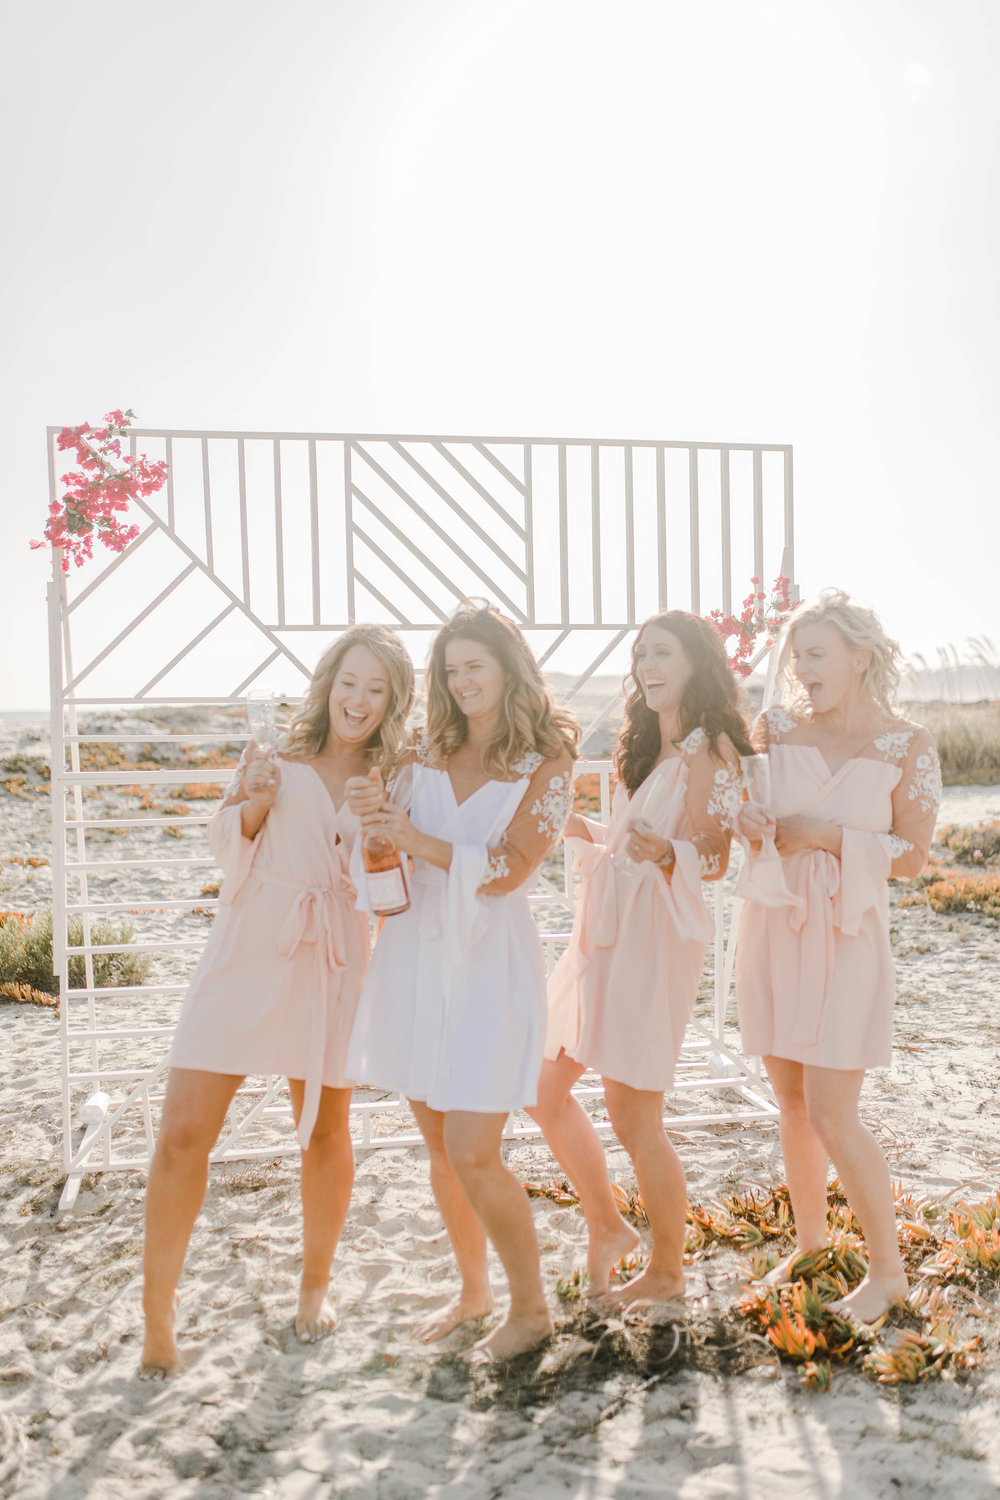 SanDiegoWeddingPhotographer_Bree+Stephen-201.jpg